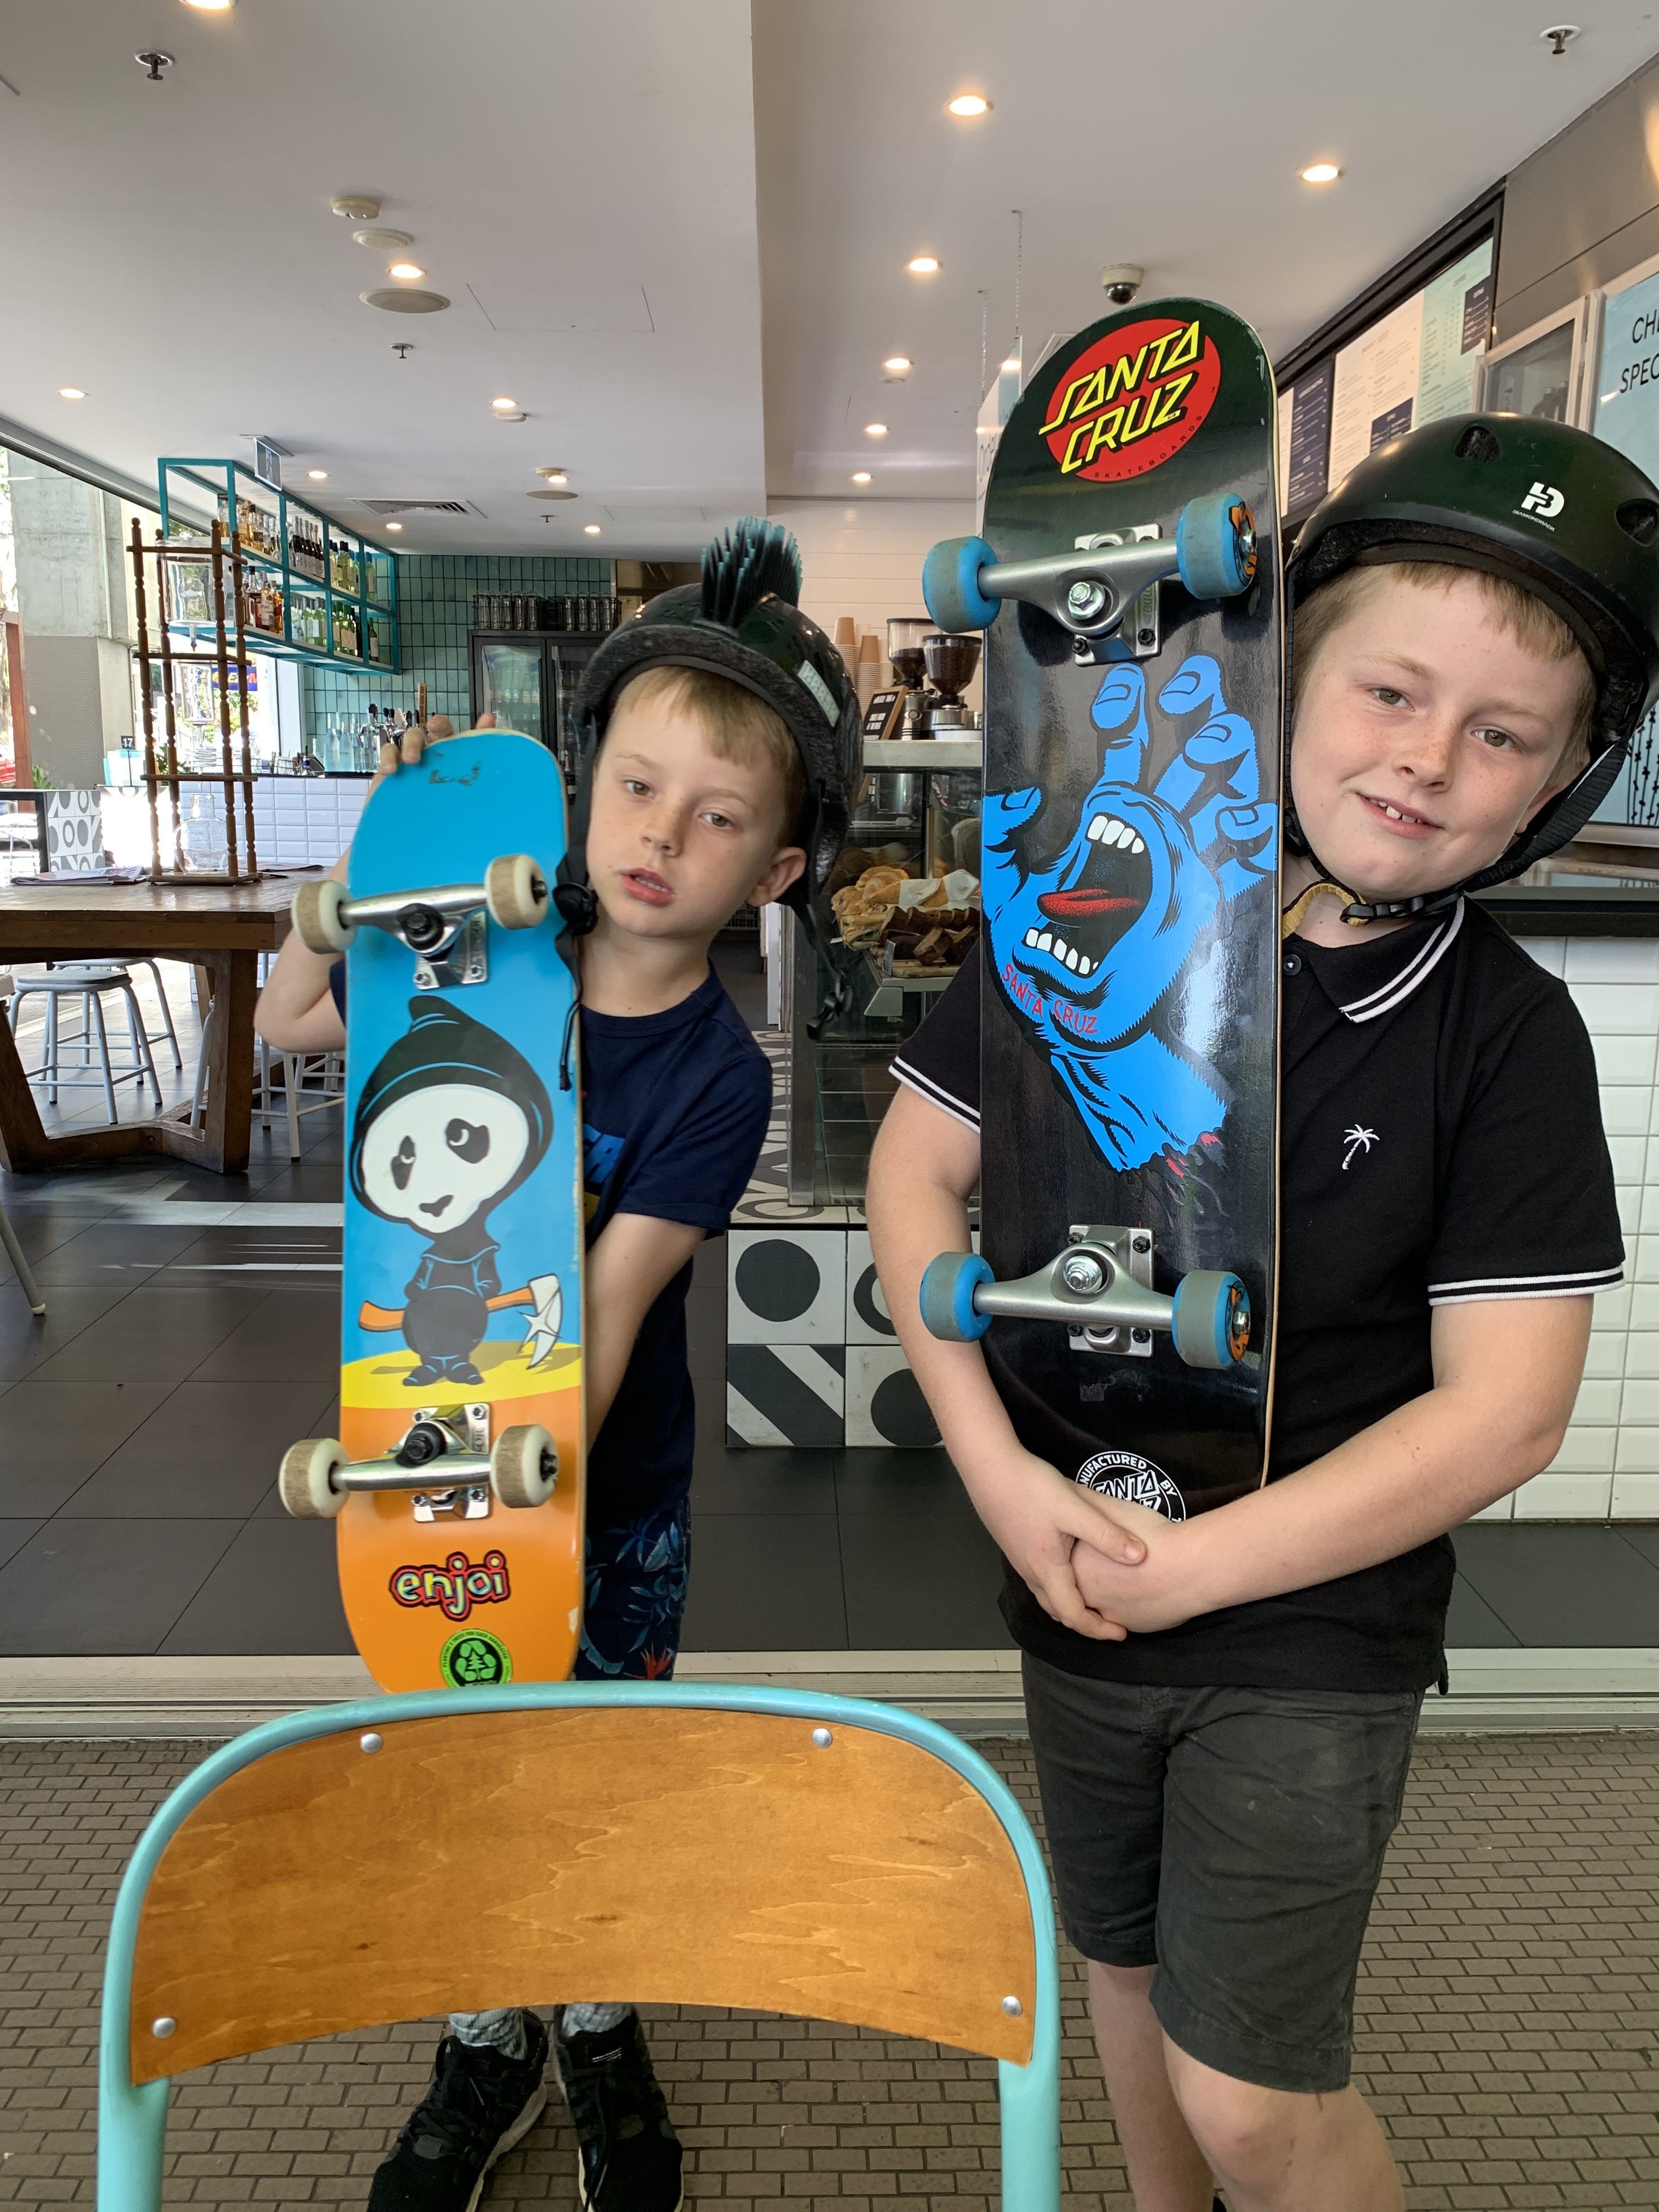 School holidays are for skateboards